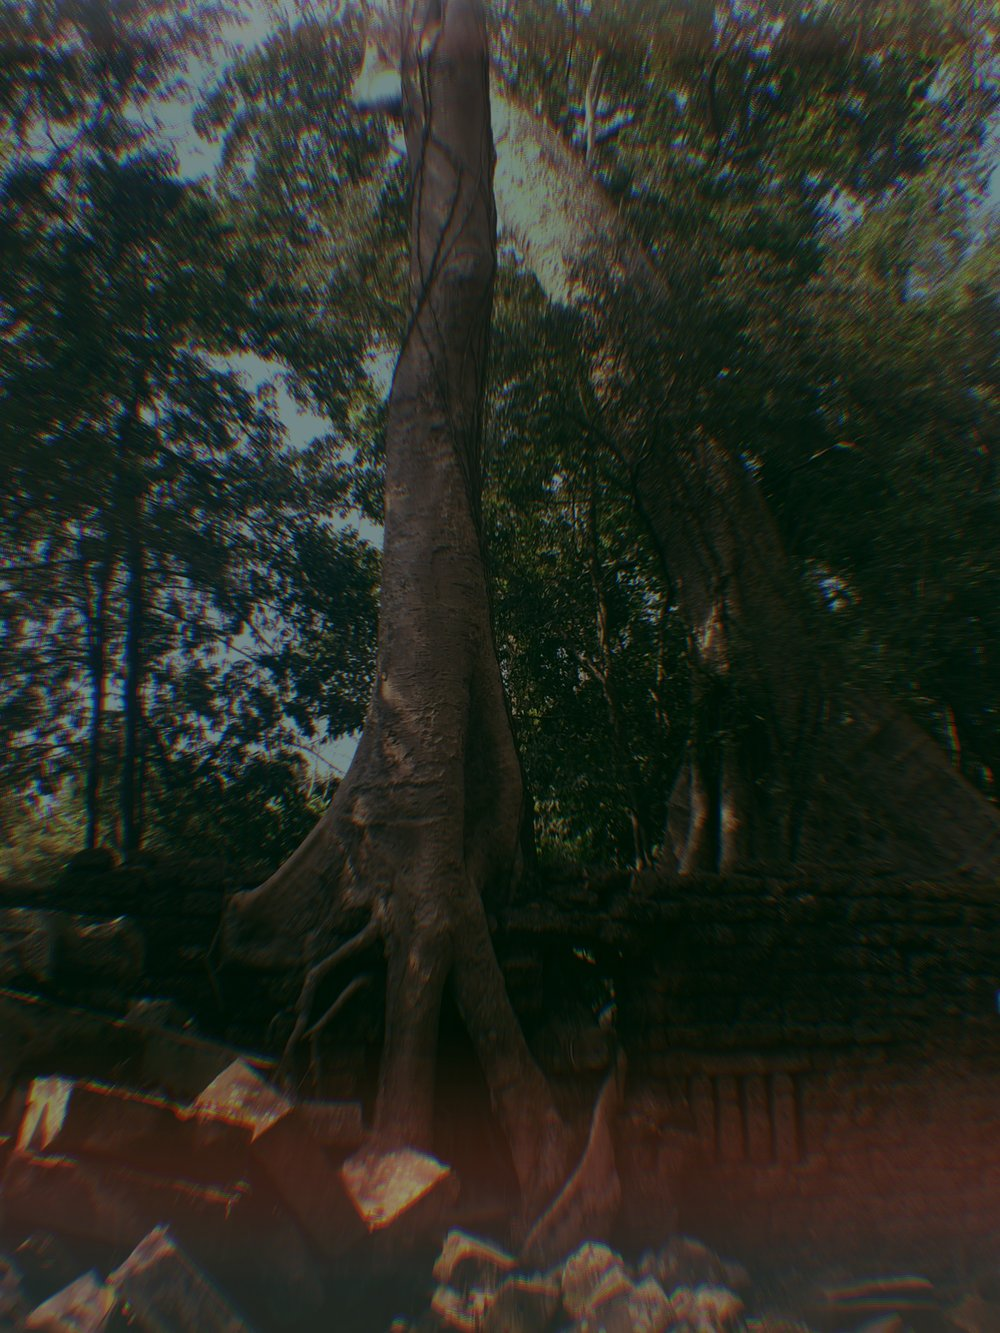 Visiting the temples of Angkor